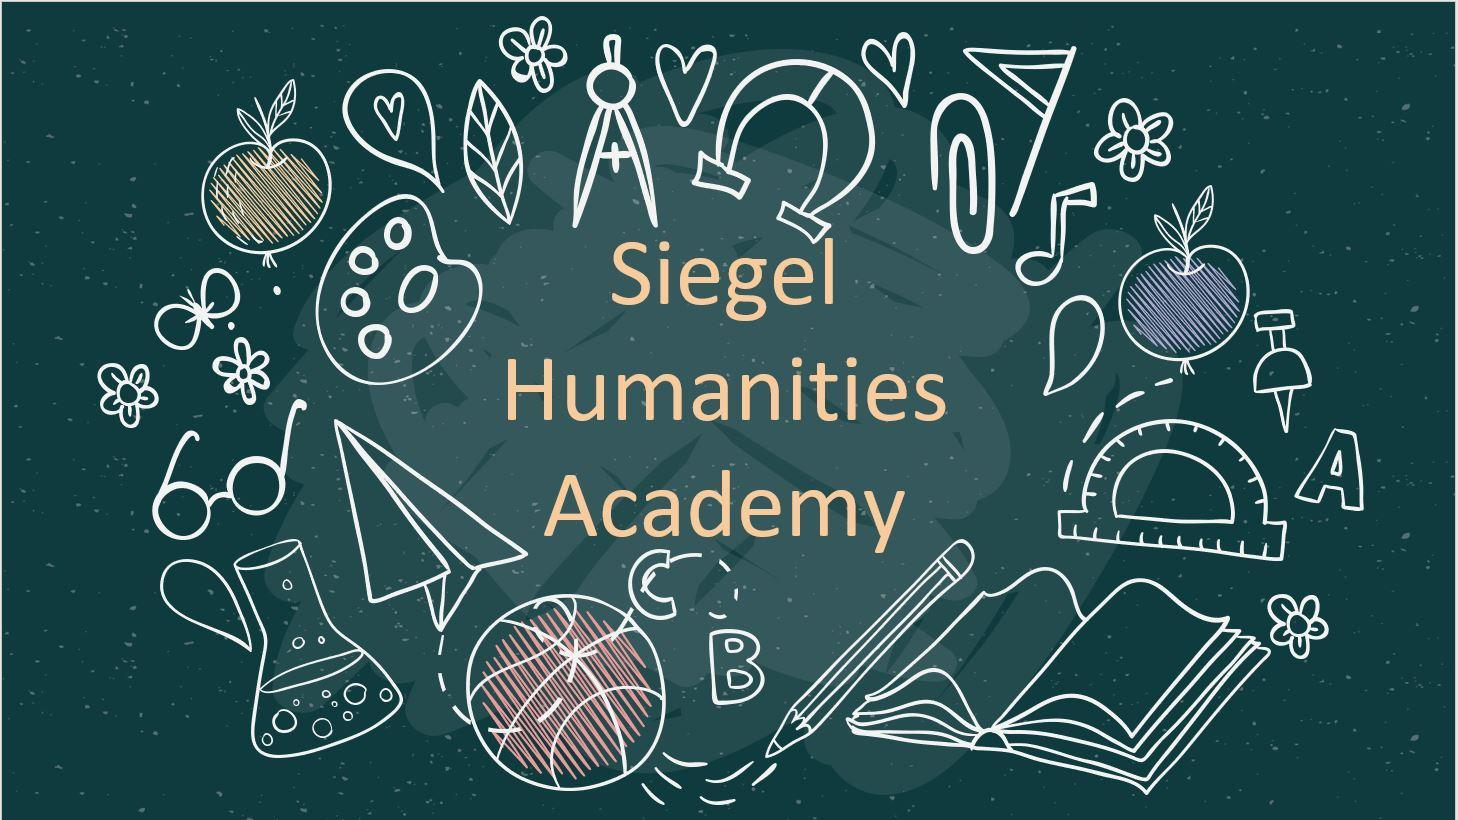 Siegel Humanities Academy